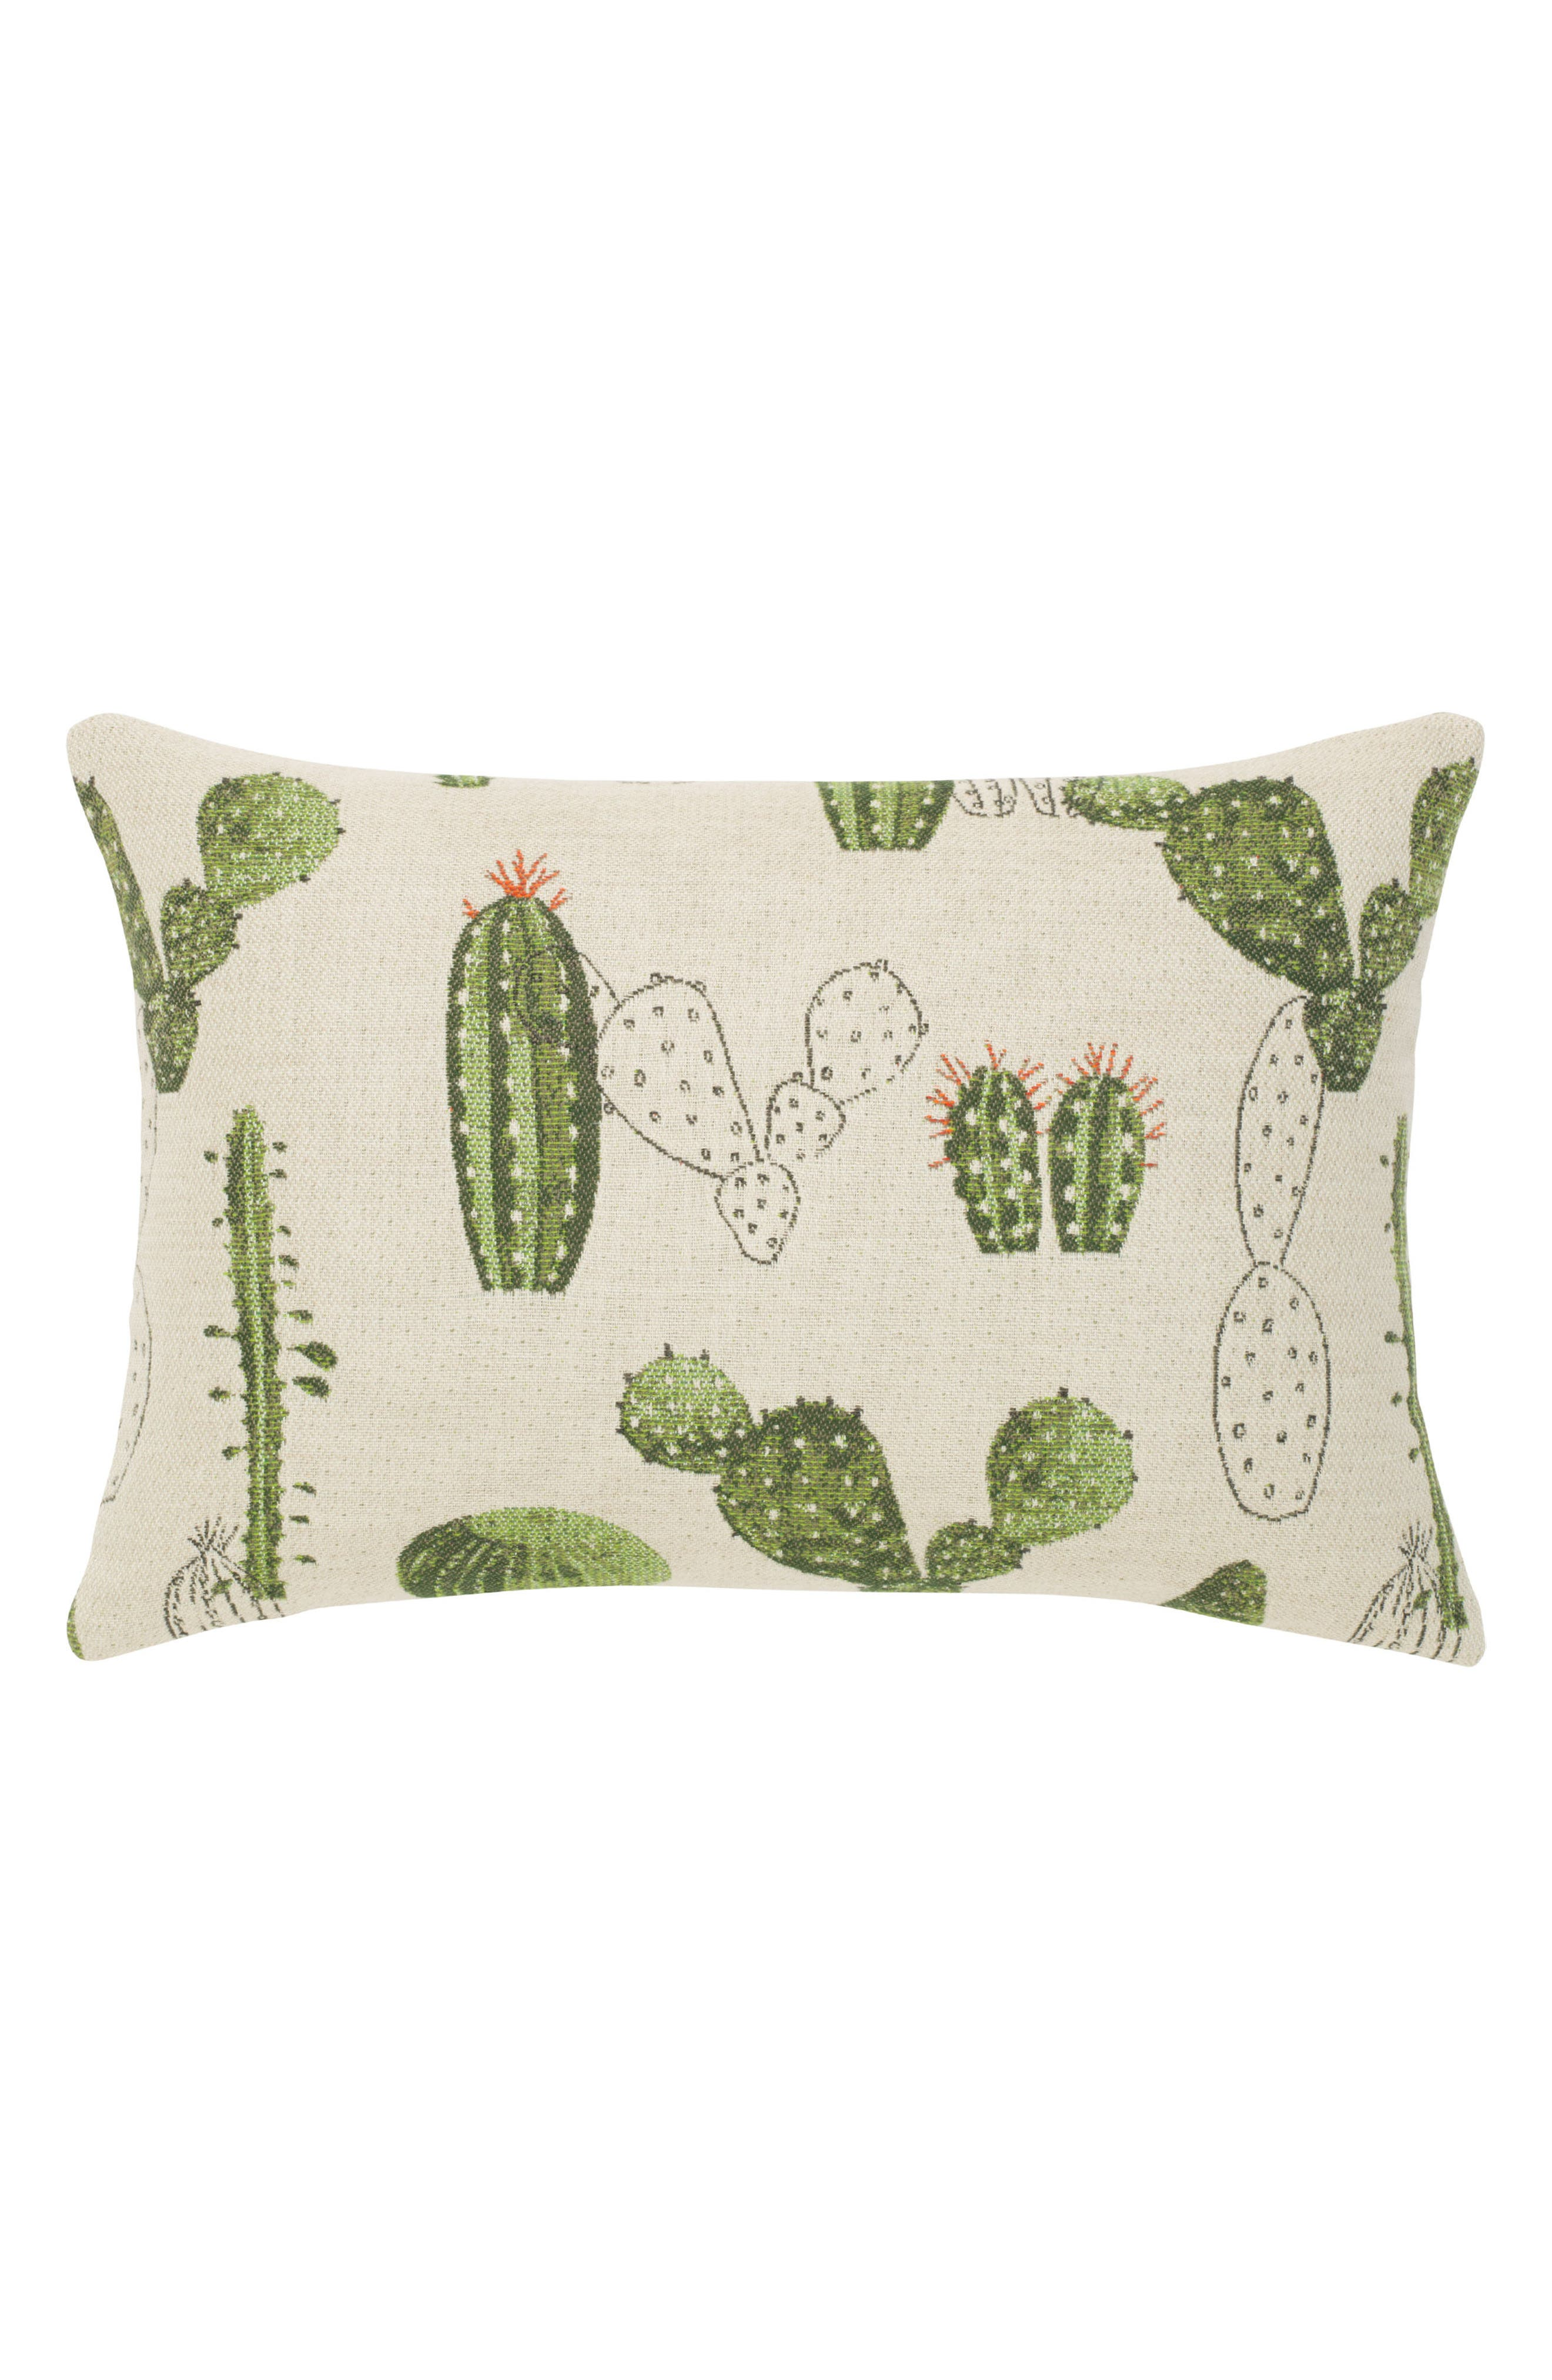 Elaine Smith Cacti Indoor/Outdoor Accent Pillow